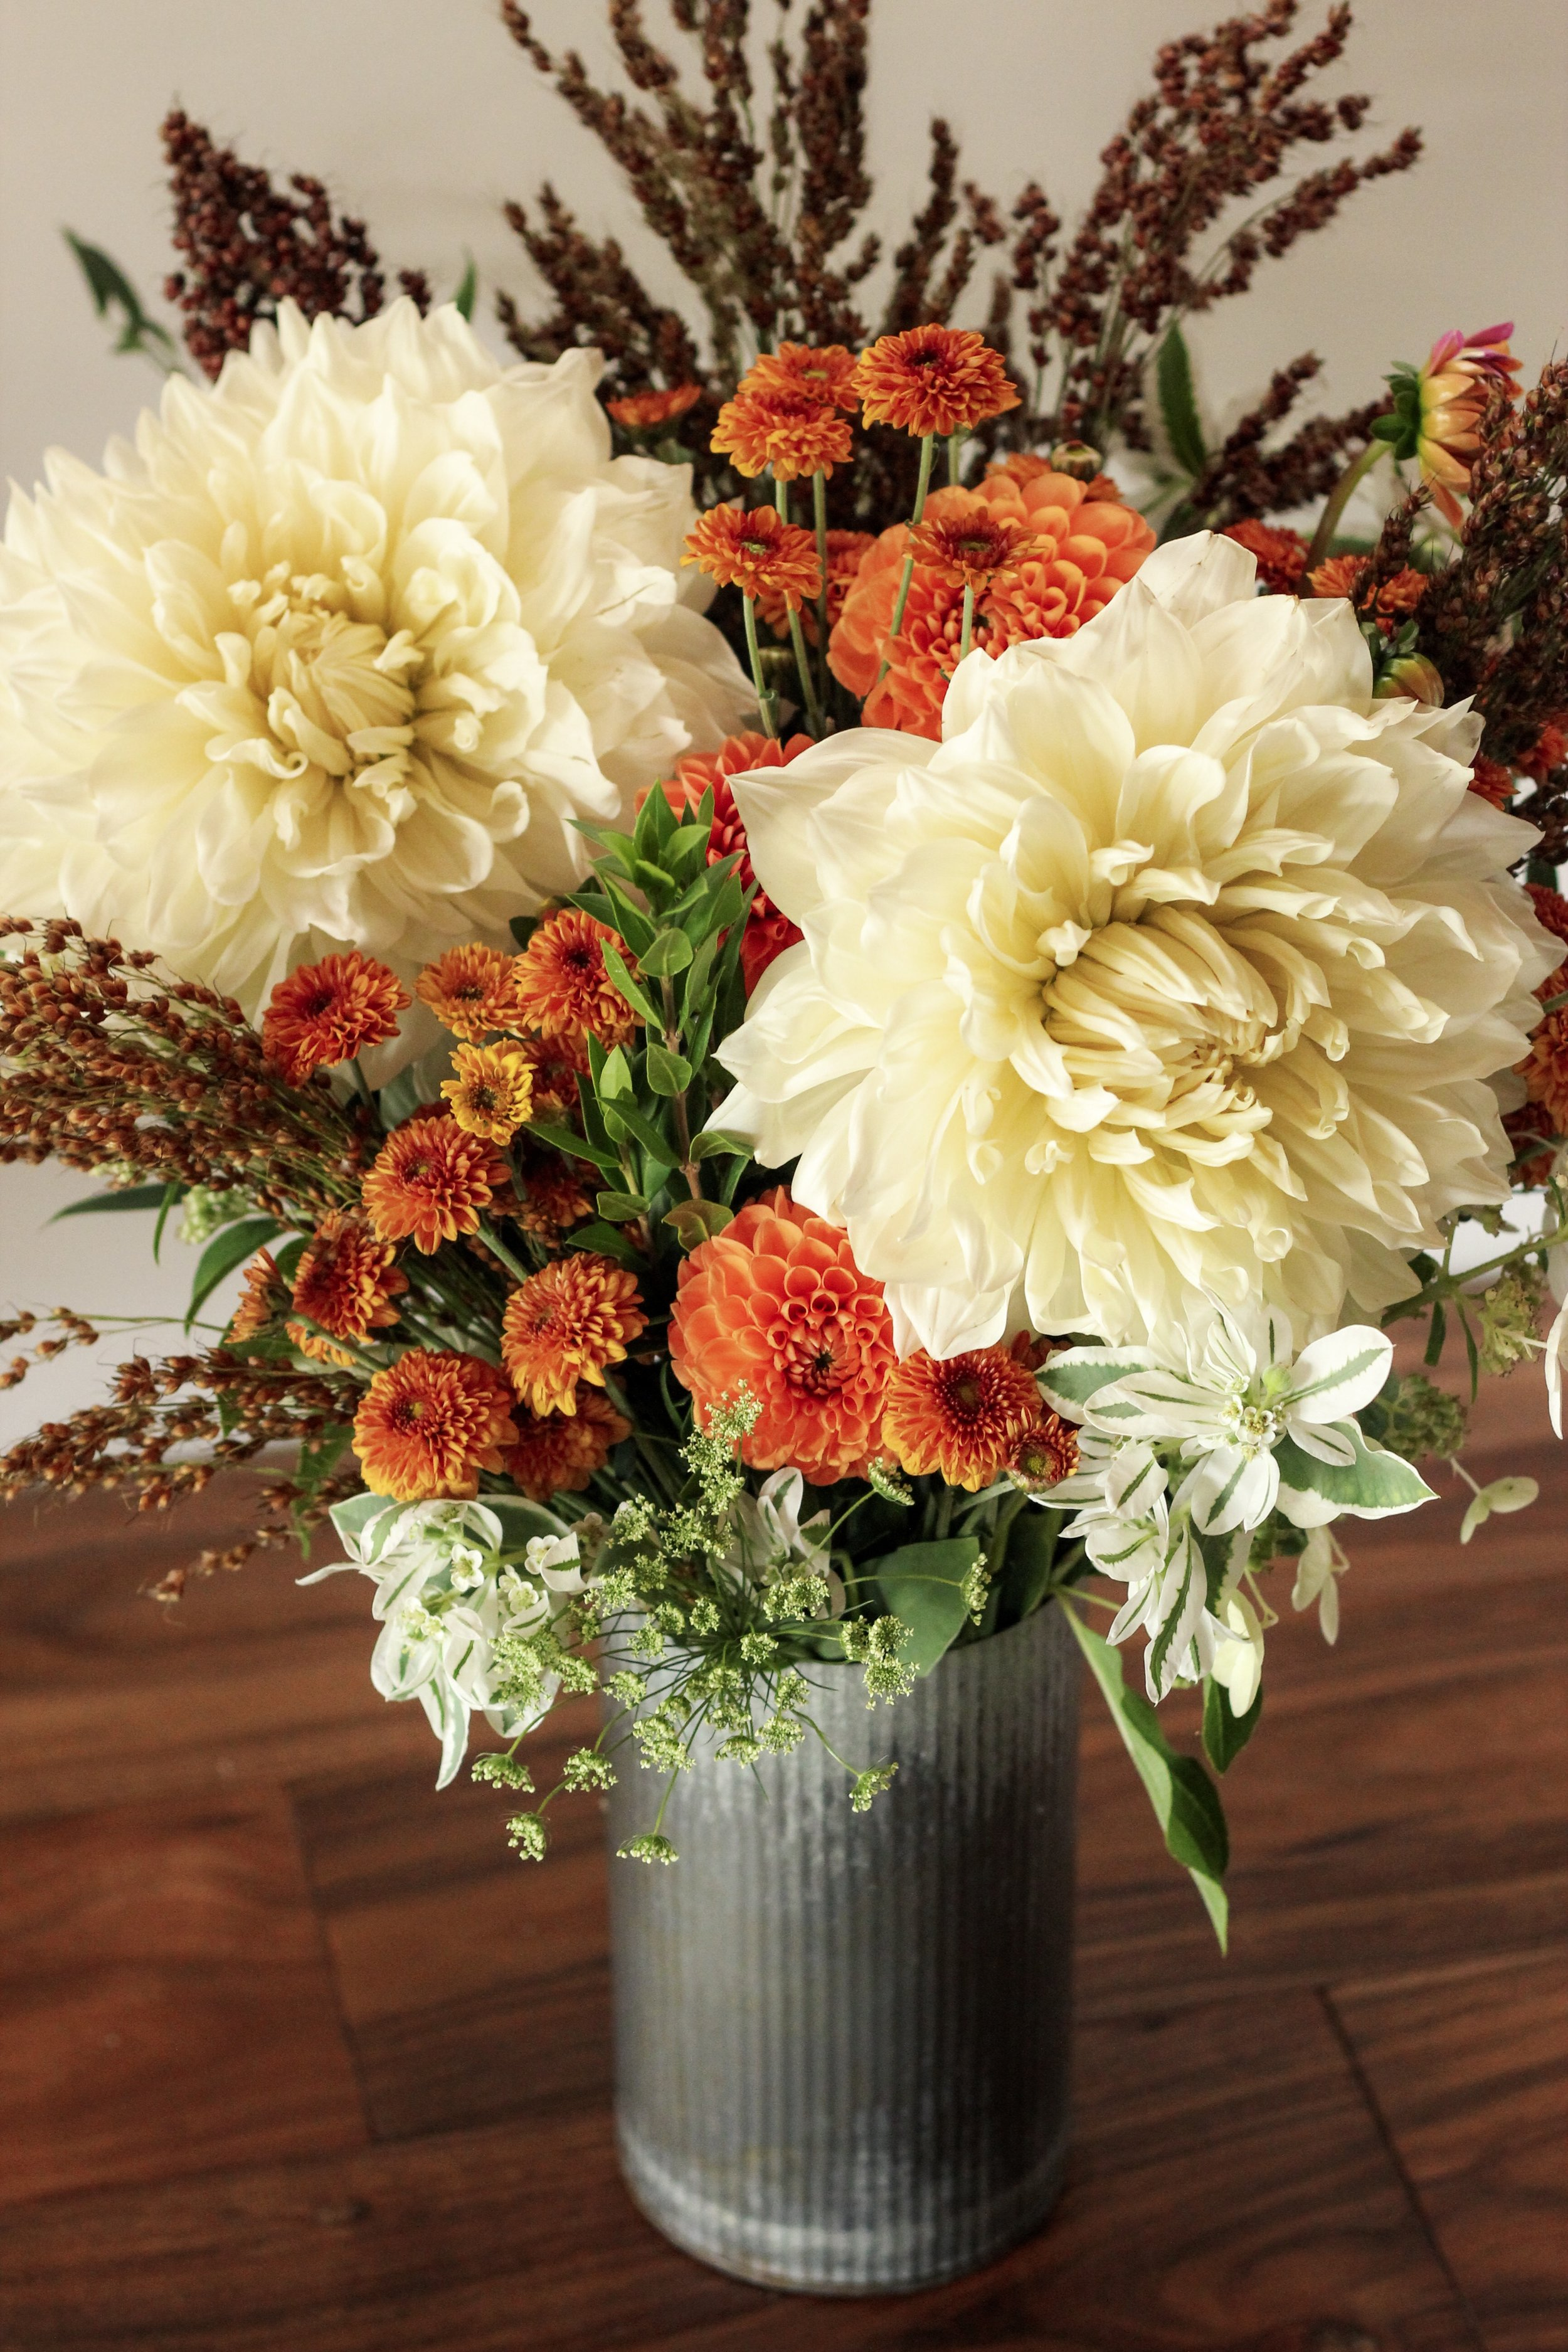 Dinner Plate dahlia white and orange fall inspired farmers choice arrangement- Roots and Wildflowers